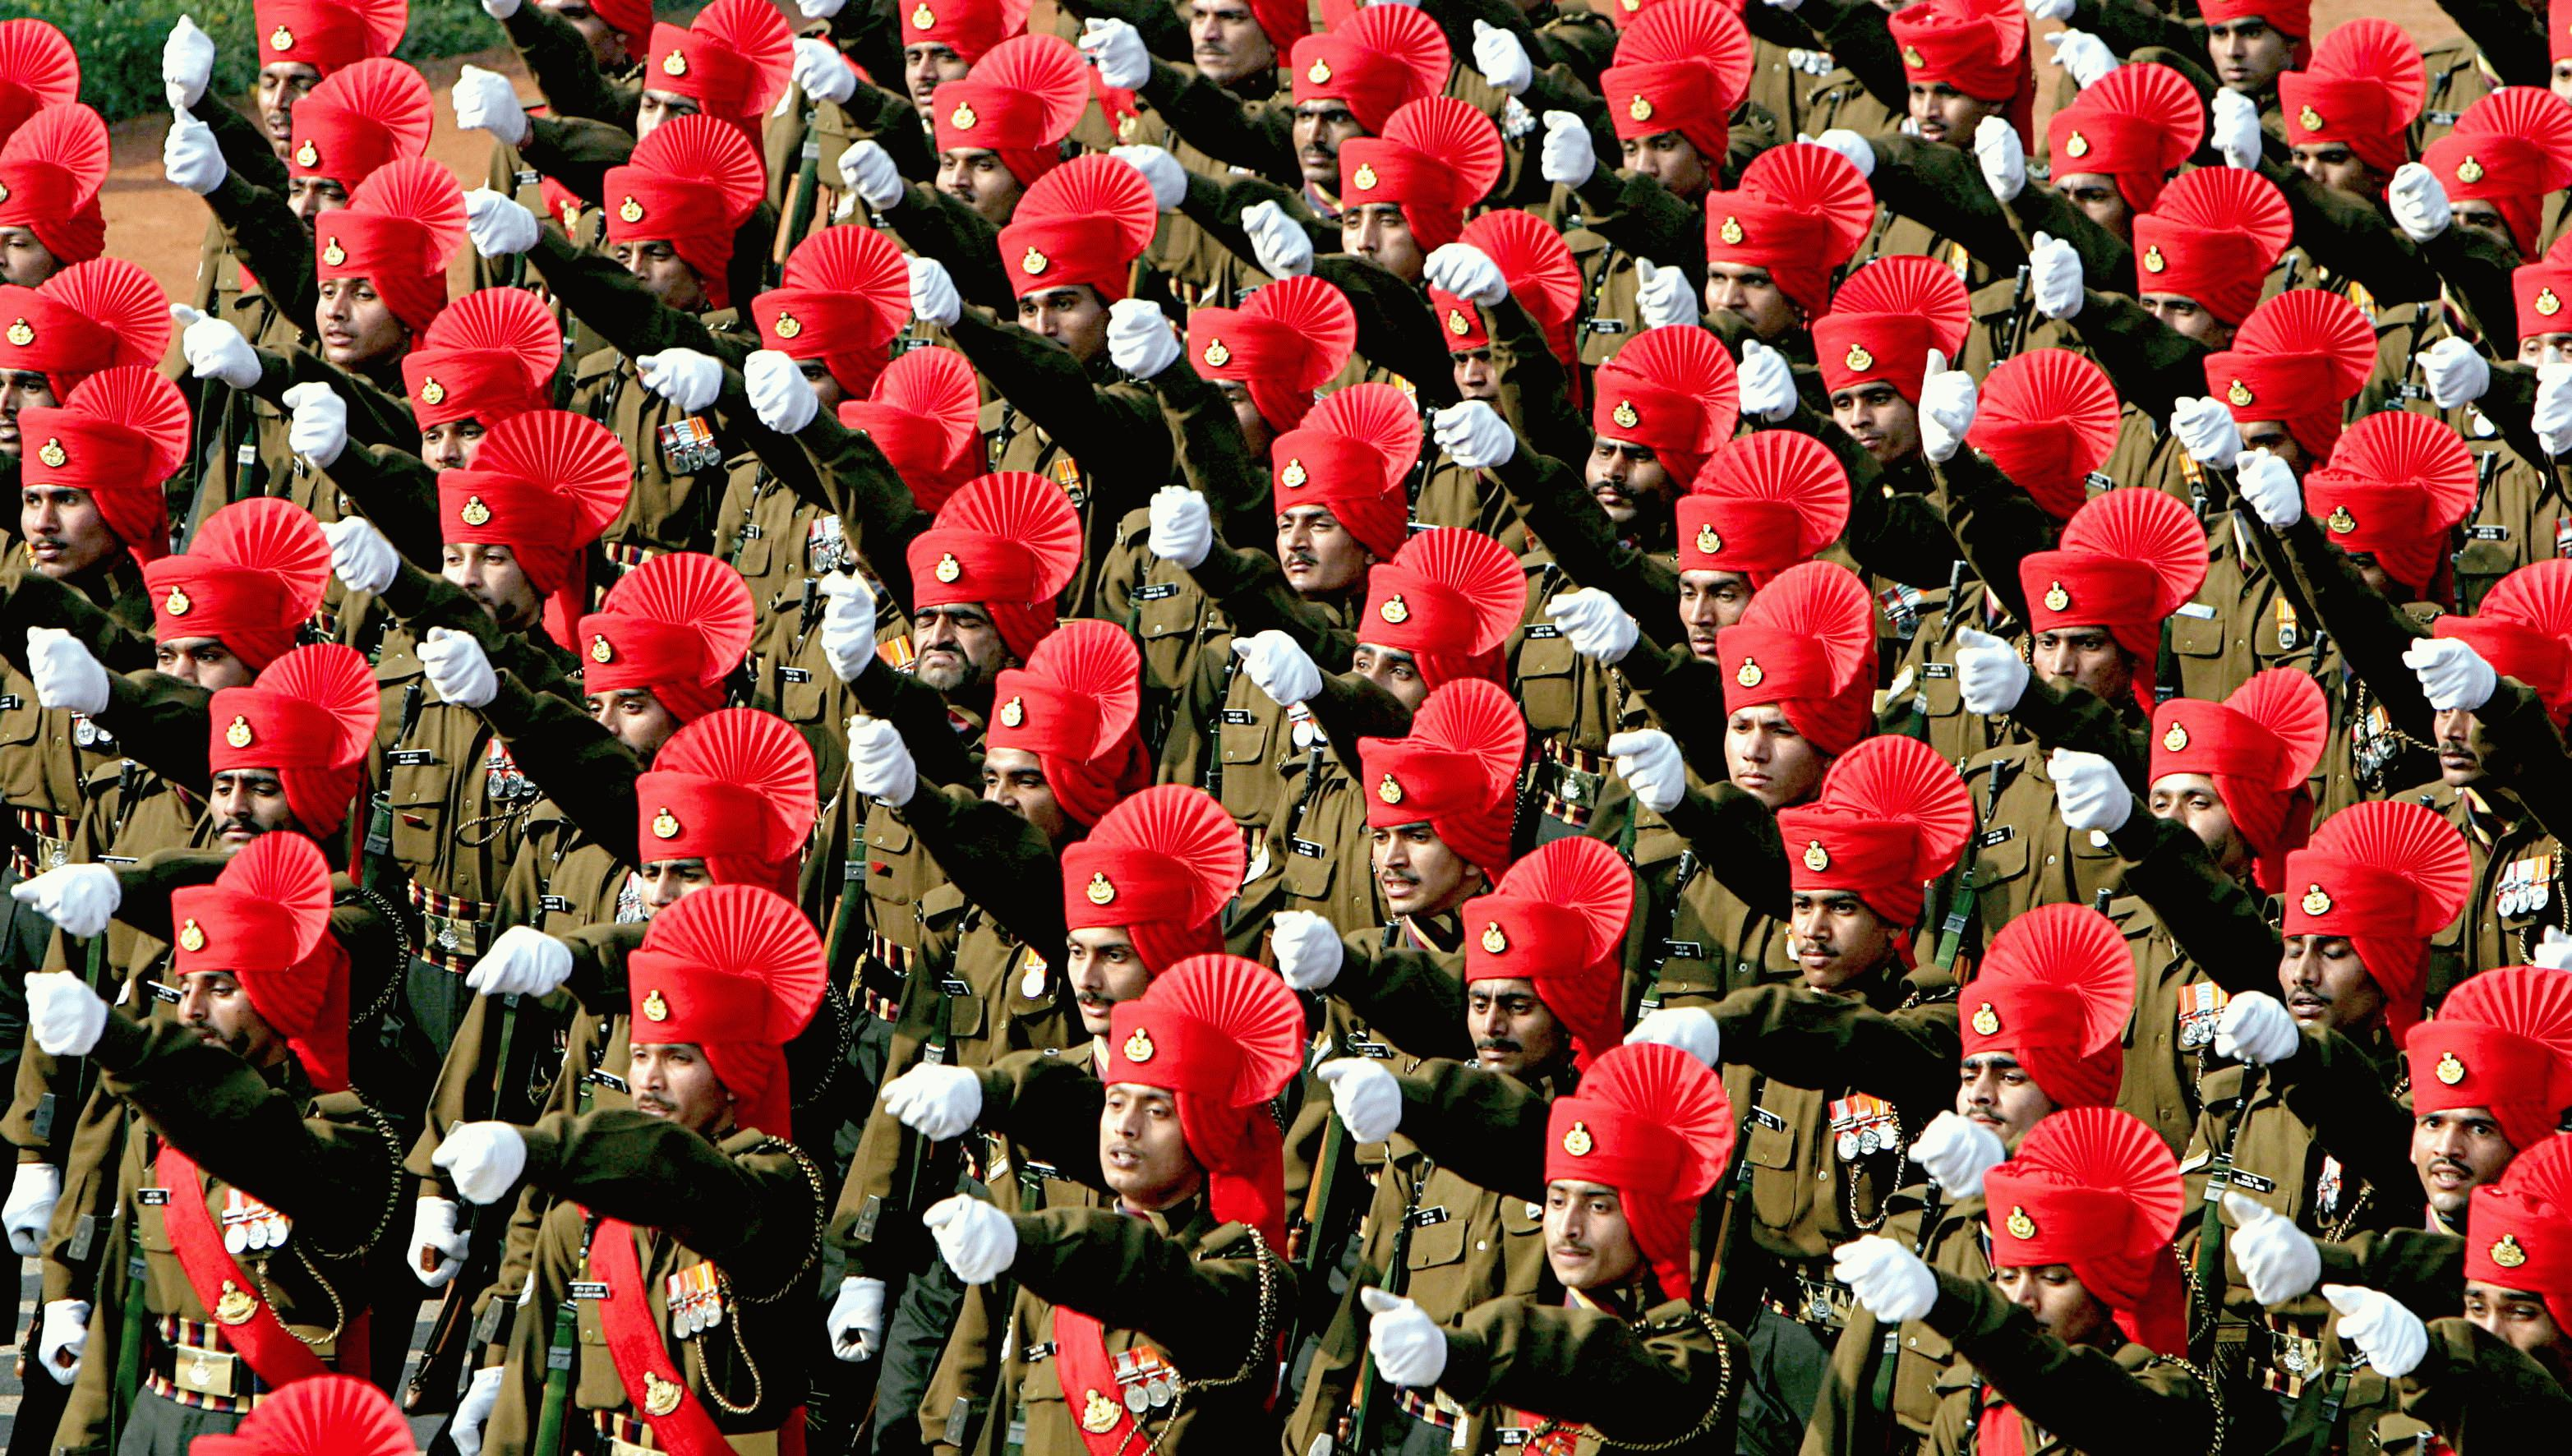 File:Indian Army-Rajput regiment.jpeg - Wikipedia, the free ...